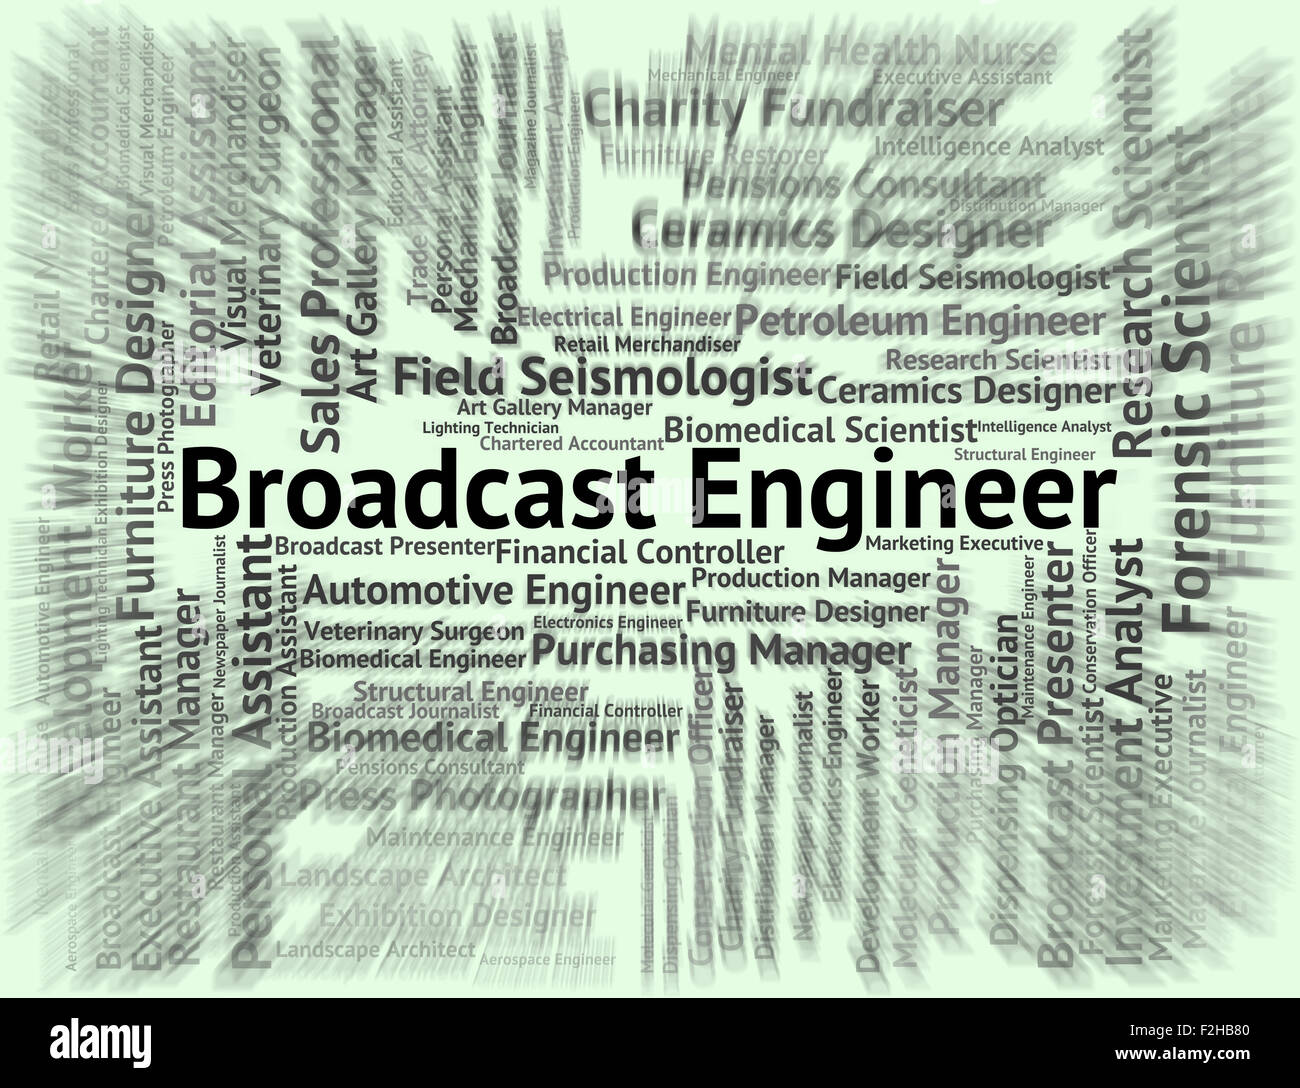 Broadcast Engineer Meaning Work Job And Position Stock Photo